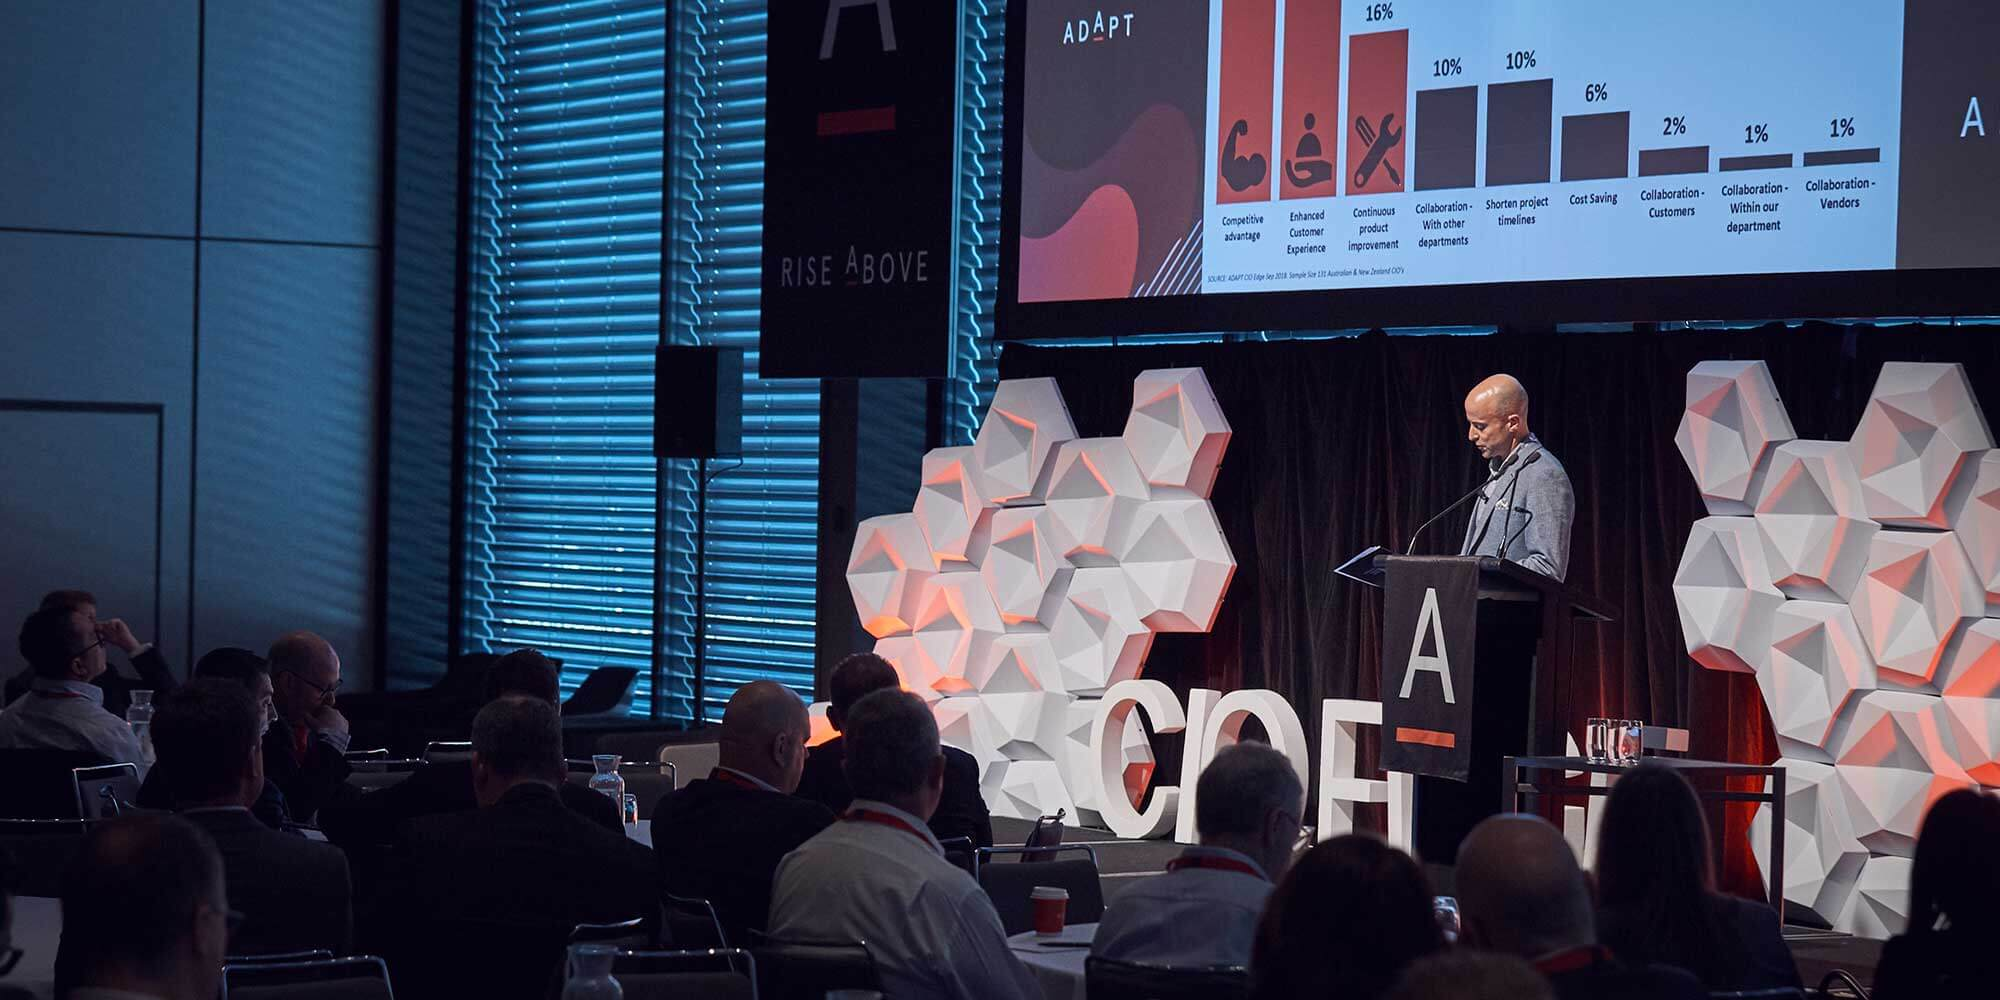 Adapt - CIO Edge 2020 | Sydney